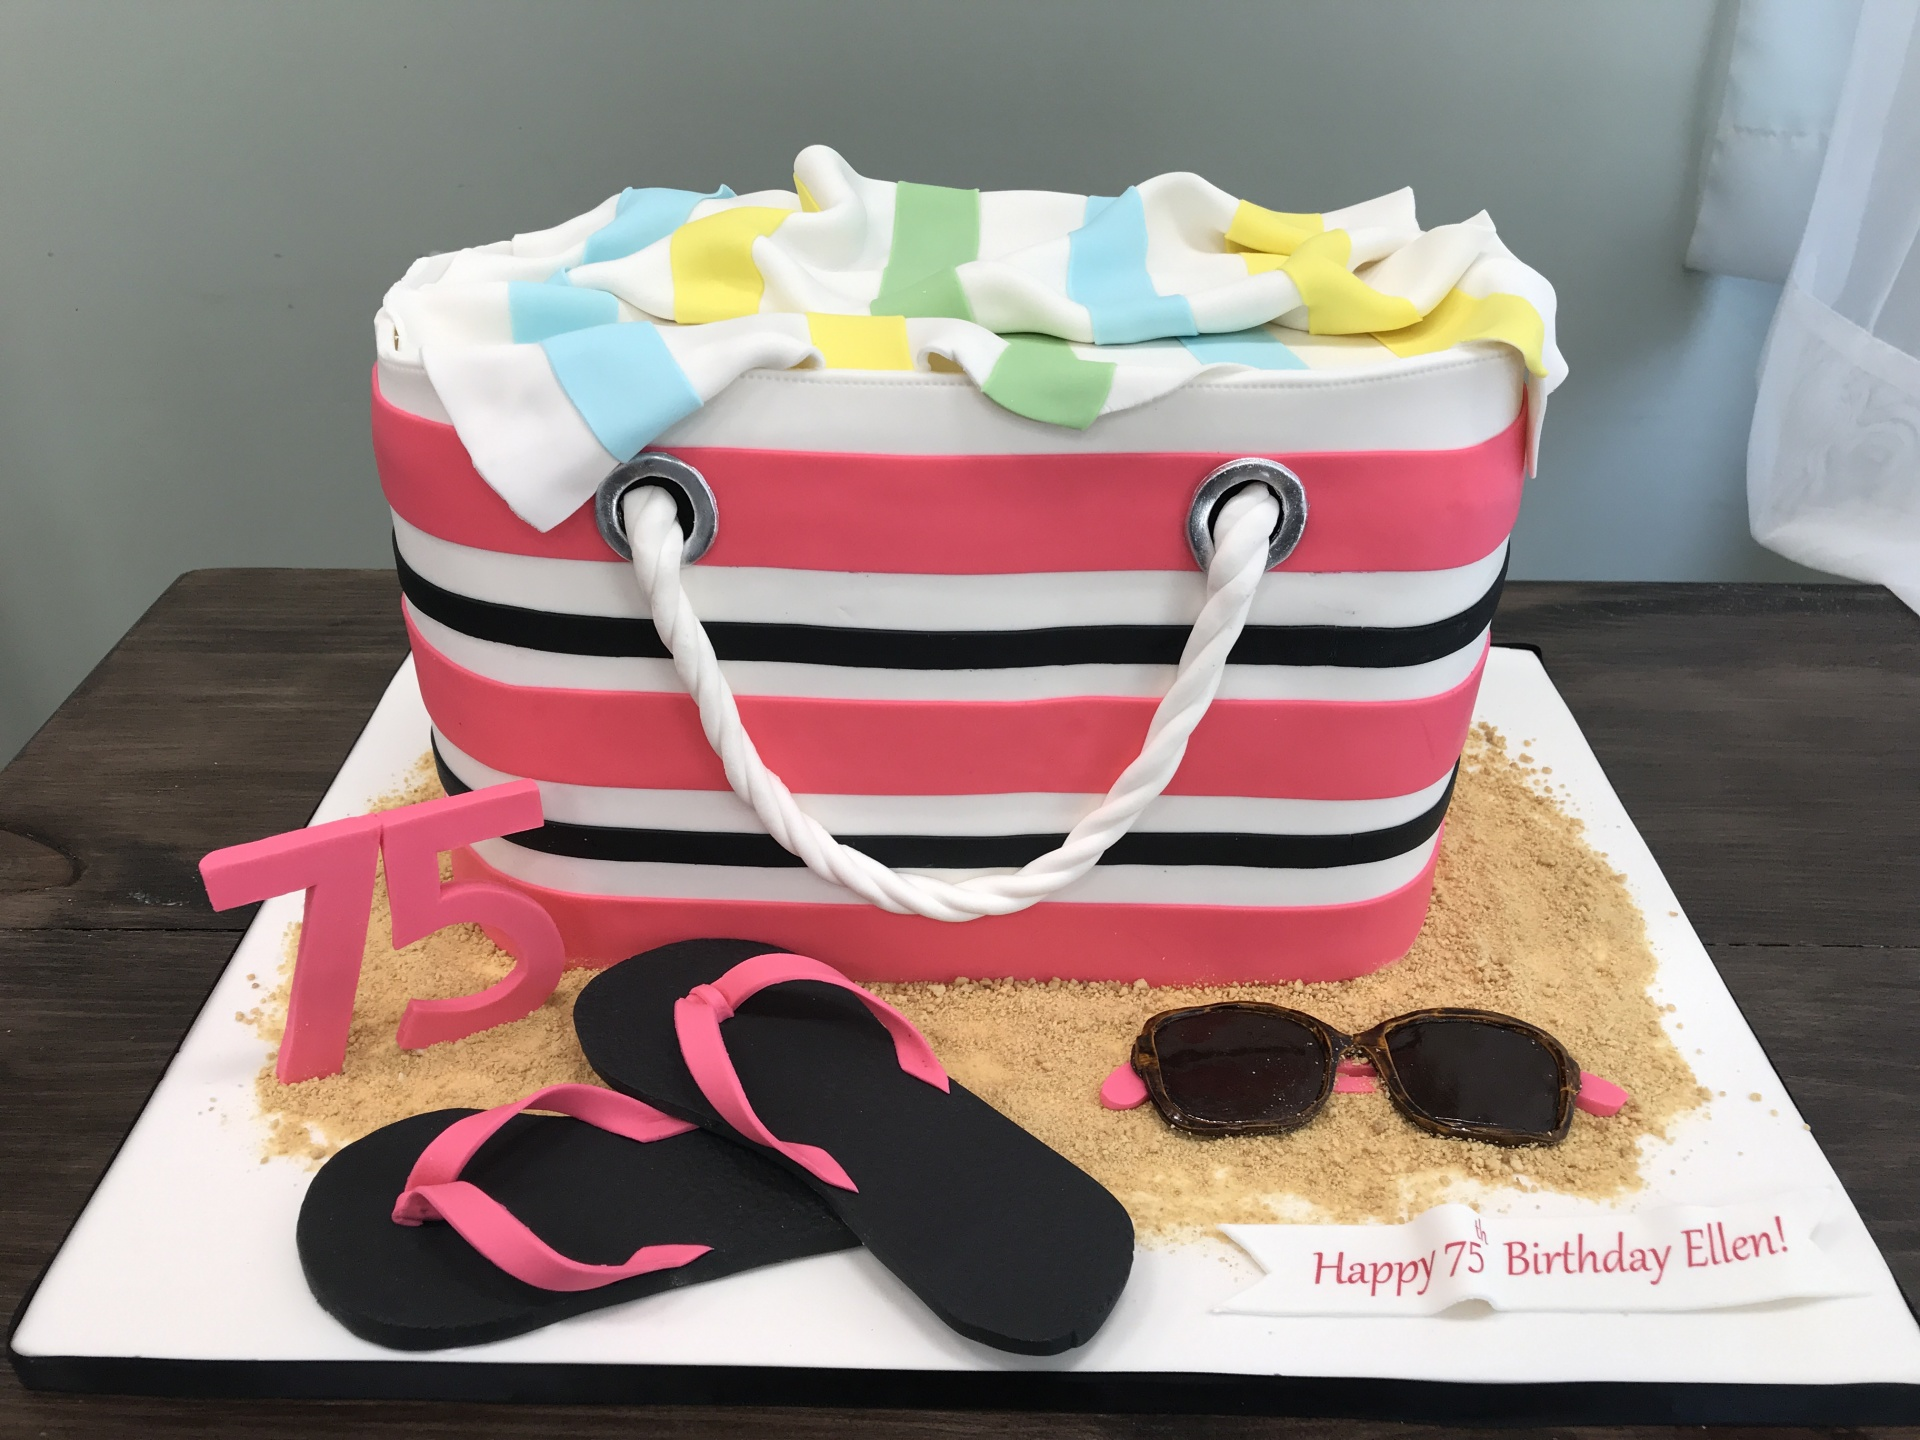 Beach bag cake with fondant sunglasses and fondant flip flops custom cakes NJ